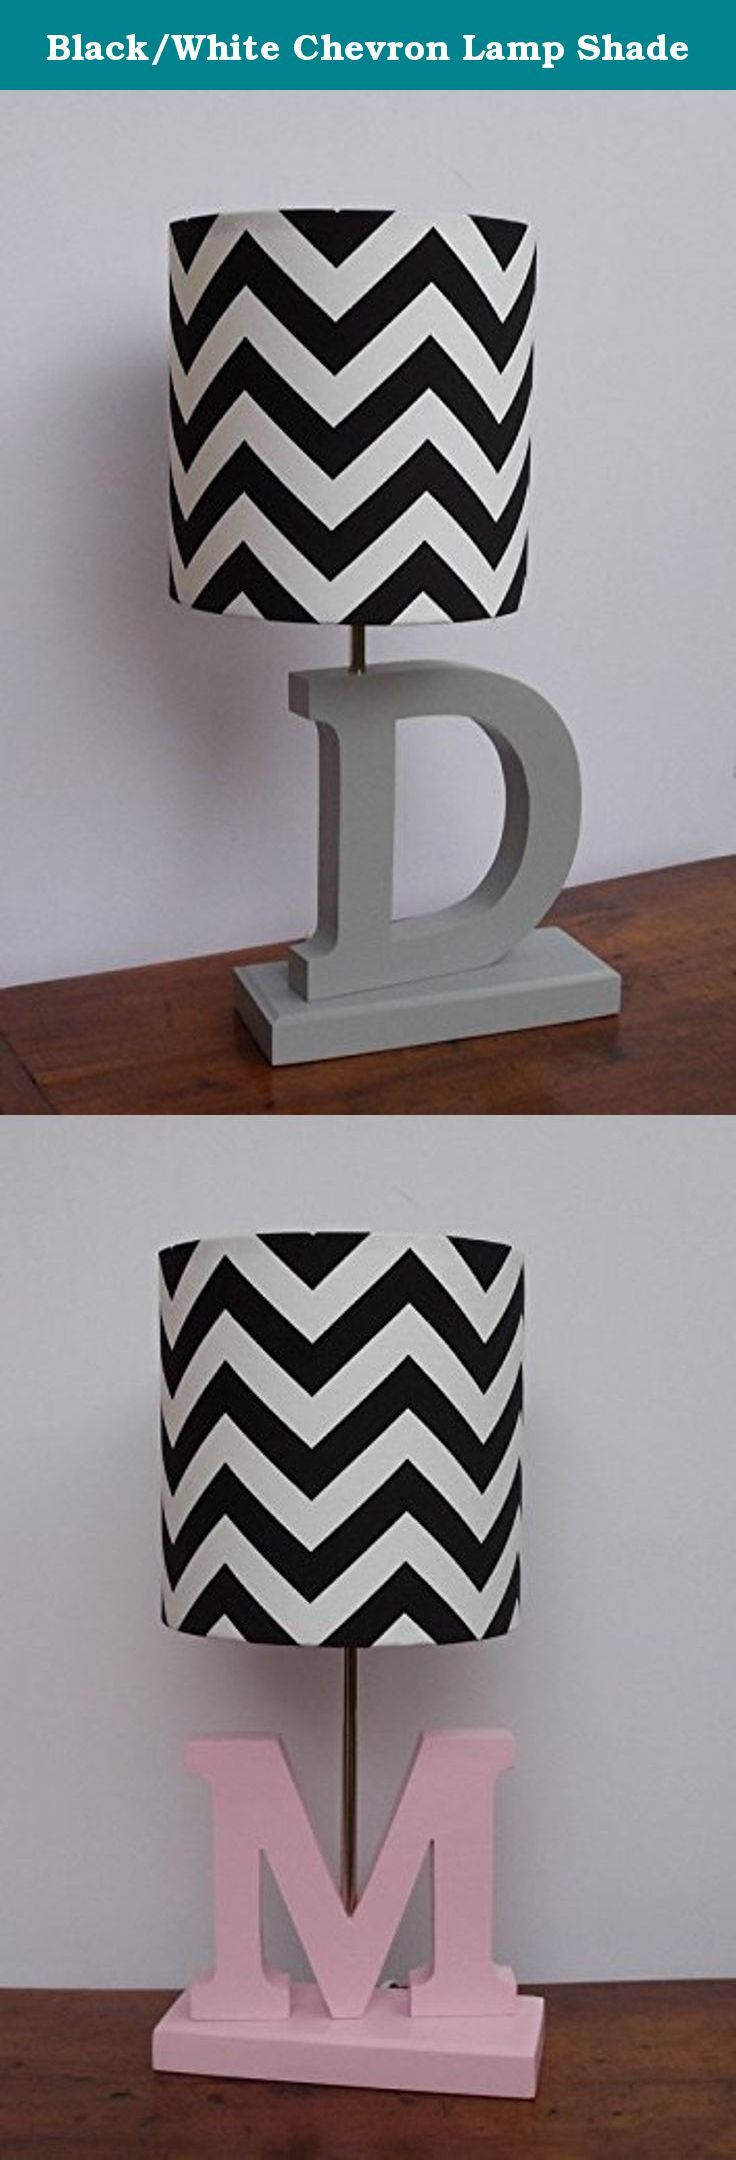 Black/White Chevron Lamp Shade. This listing is for a handmade black/white chevron drum lamp shade. Made from high quality Premier Prints cotton fabric. Great for nursery or child's bedroom. **THIS LISTING IS FOR THE LAMP SHADE ONLY.** However, we also sell the lamp base pictured above, separately. Please visit our Amazon store to view our lamp base listings. Lamp Shade clips onto any standard incandescent light bulb.